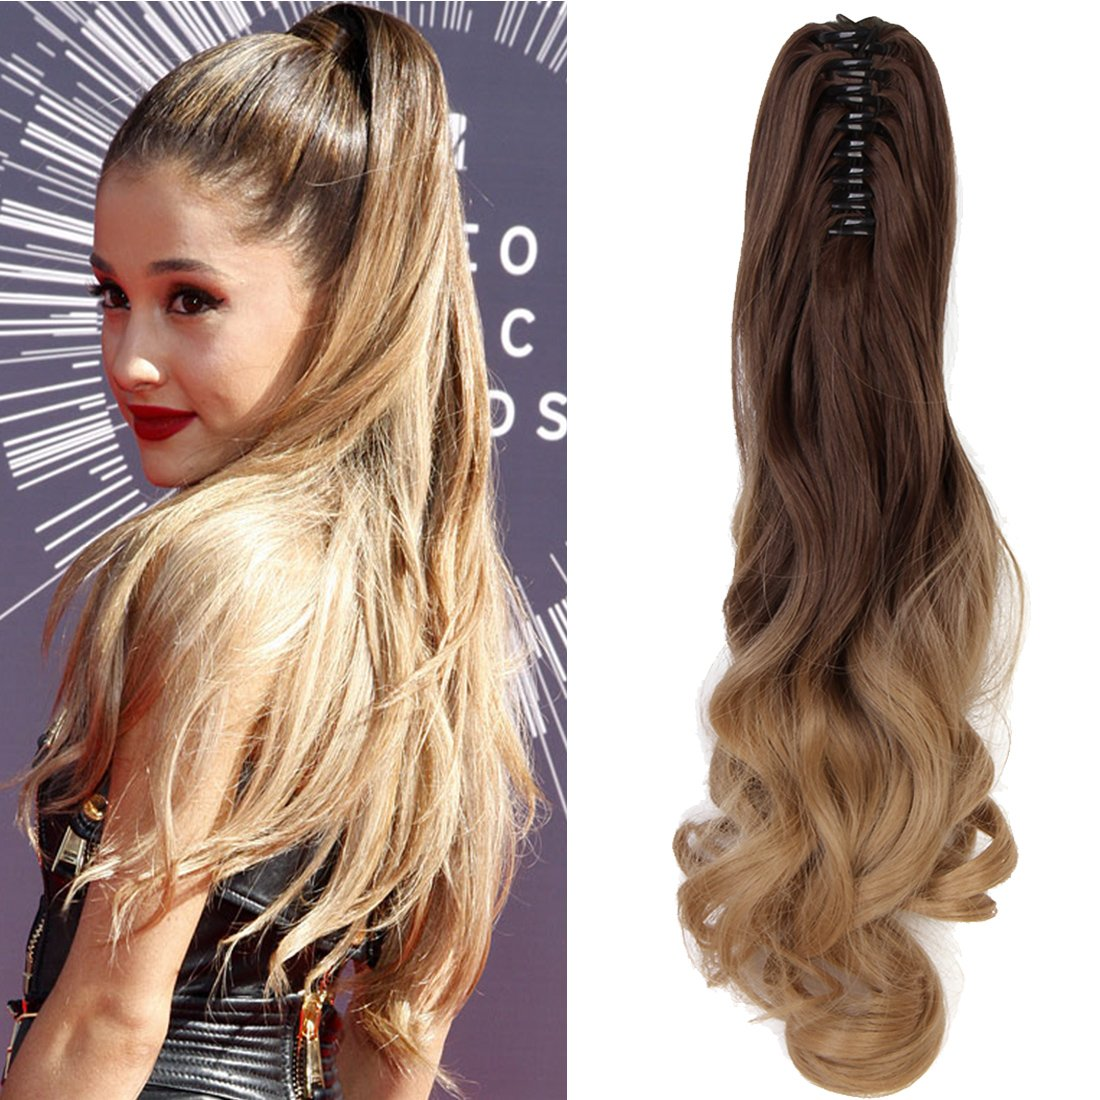 """Neverland Beauty 20""""(50cm) Ombre Two Tone Long Big Wavy Claw Curly Ponytail Clip in Hair Extensions 8#/25#(Medium Brown to Ash Blonde)"""